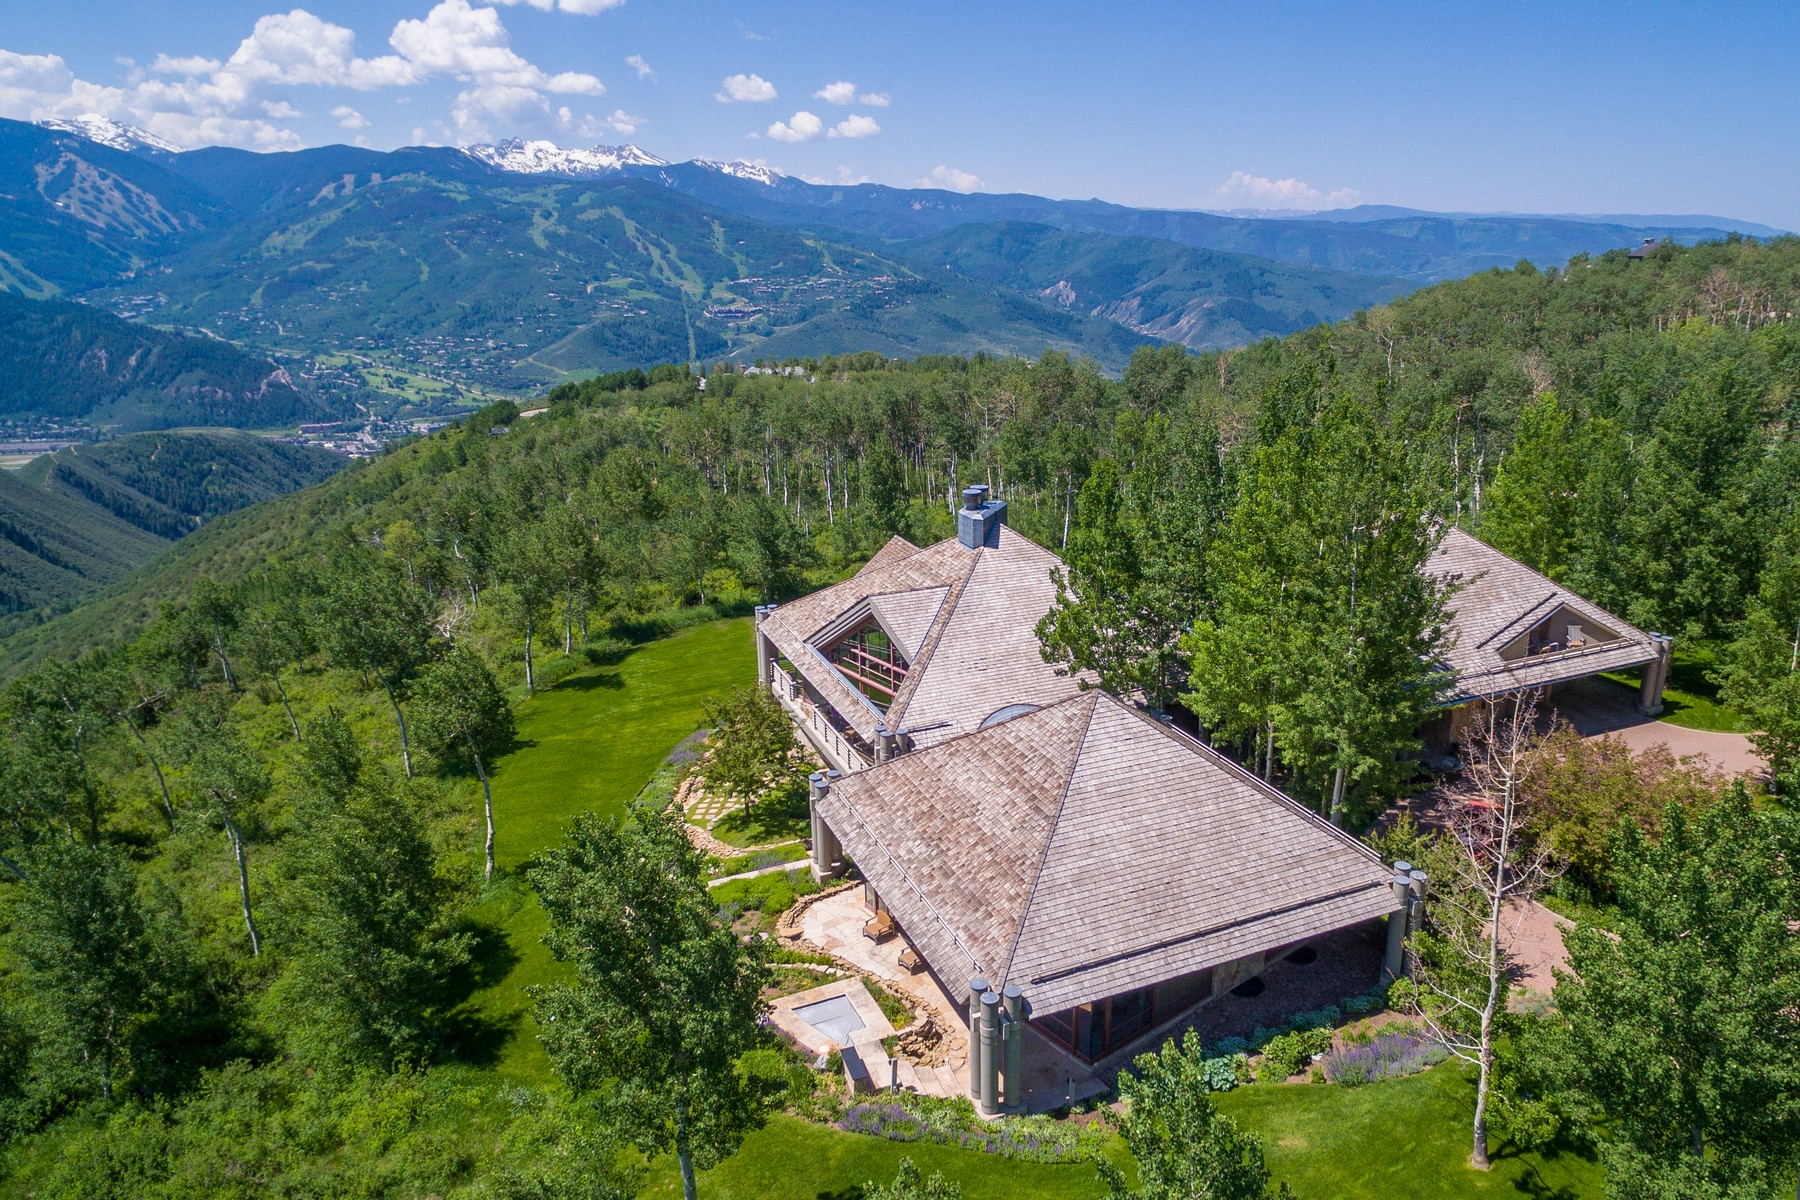 Casa Unifamiliar por un Venta en 56 Rose Crown 56 Rose Crown Beaver Creek, Colorado 81620 Estados Unidos